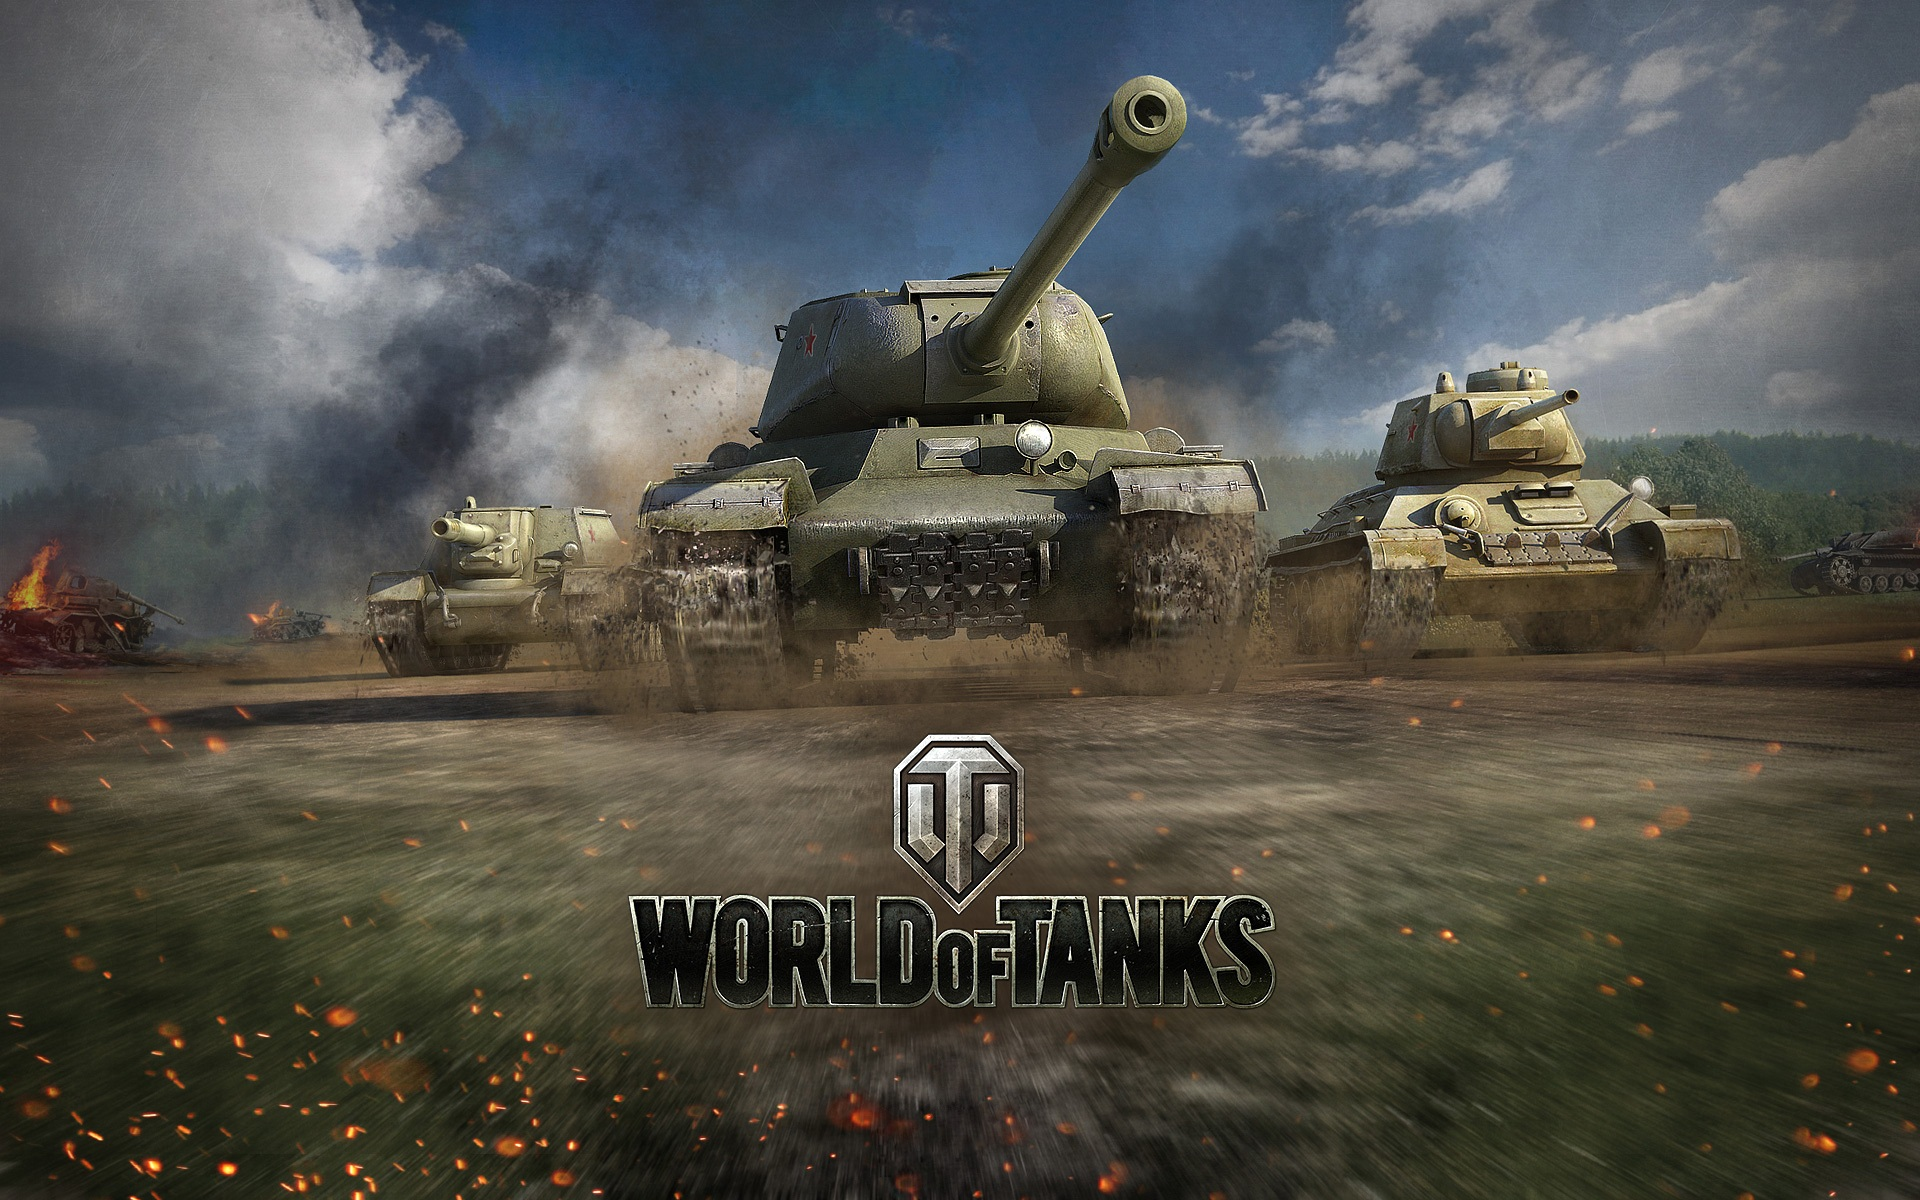 World of tanks магазин в спб